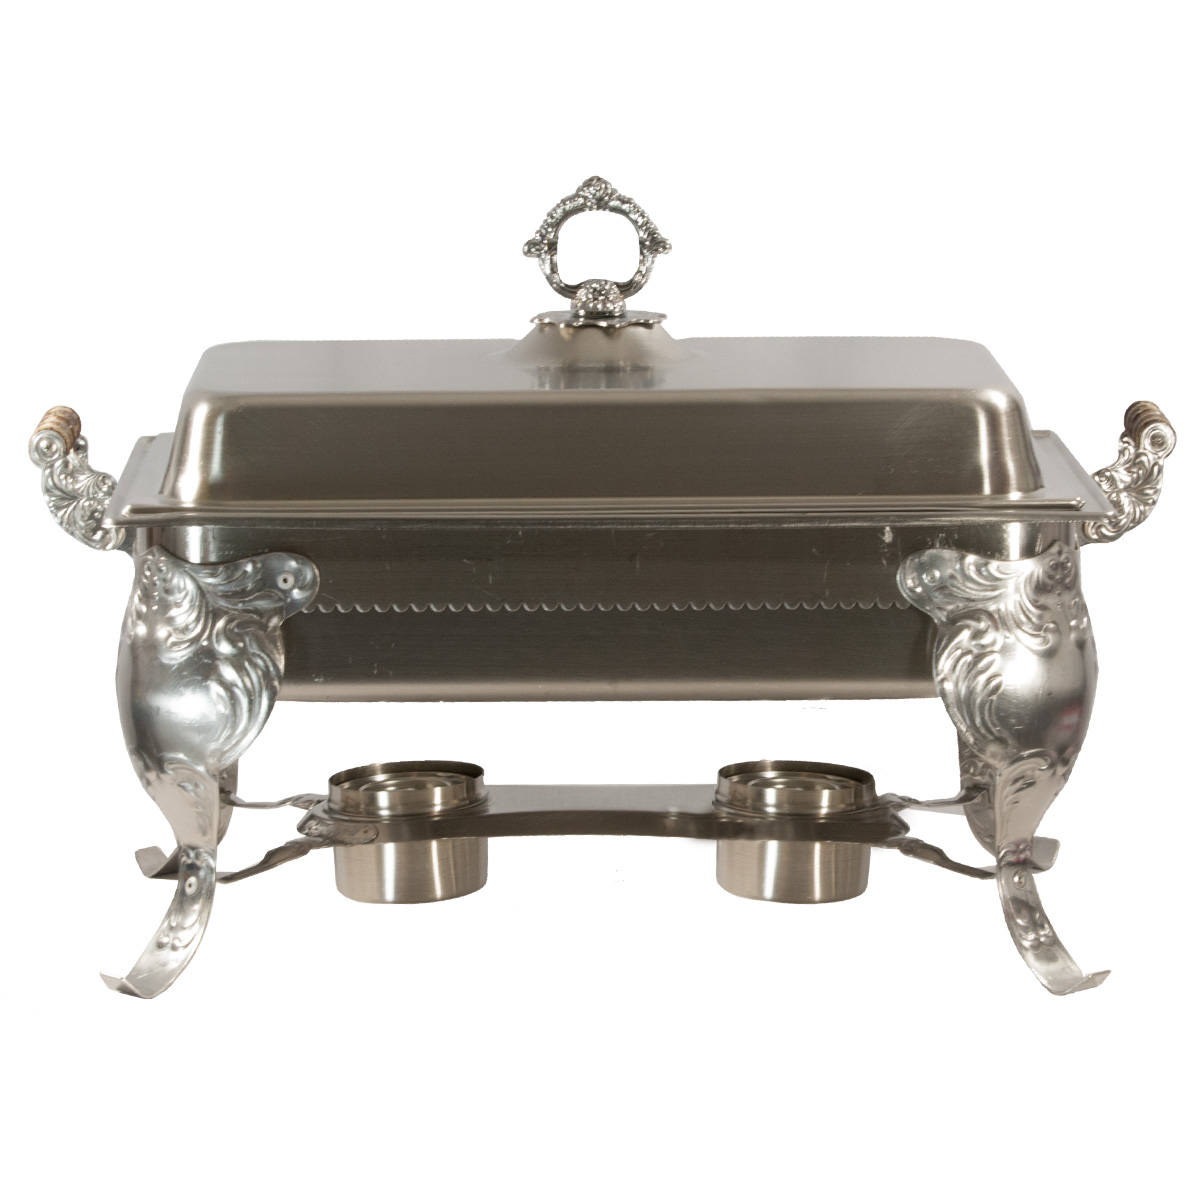 8 Quart Fancy Stainless Chafing Dish